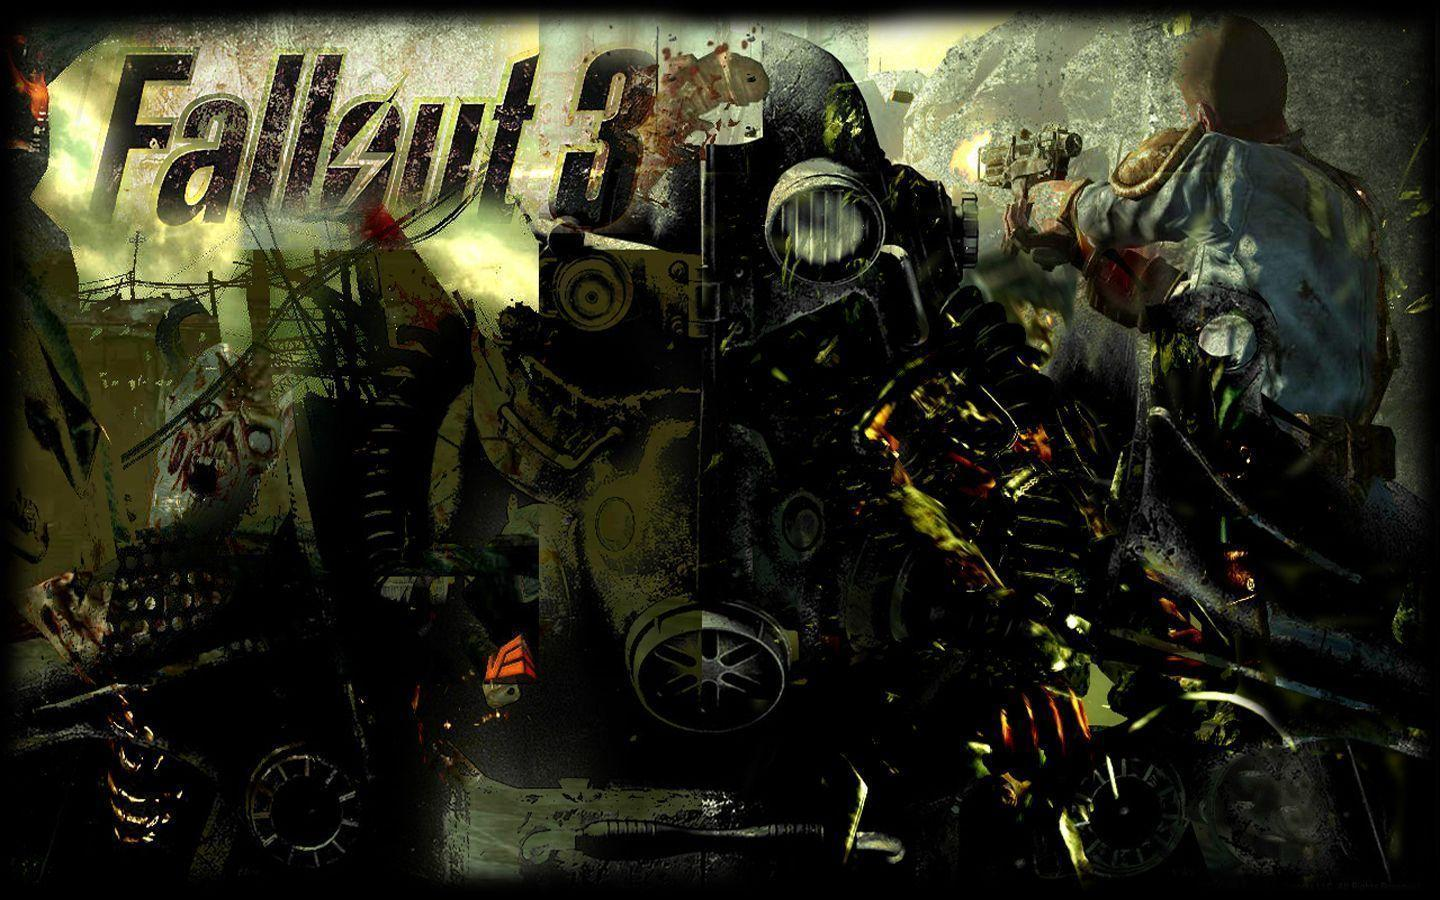 Fall Out Boy Wallpaper Android Fallout 3 Wallpapers Hd Wallpaper Cave